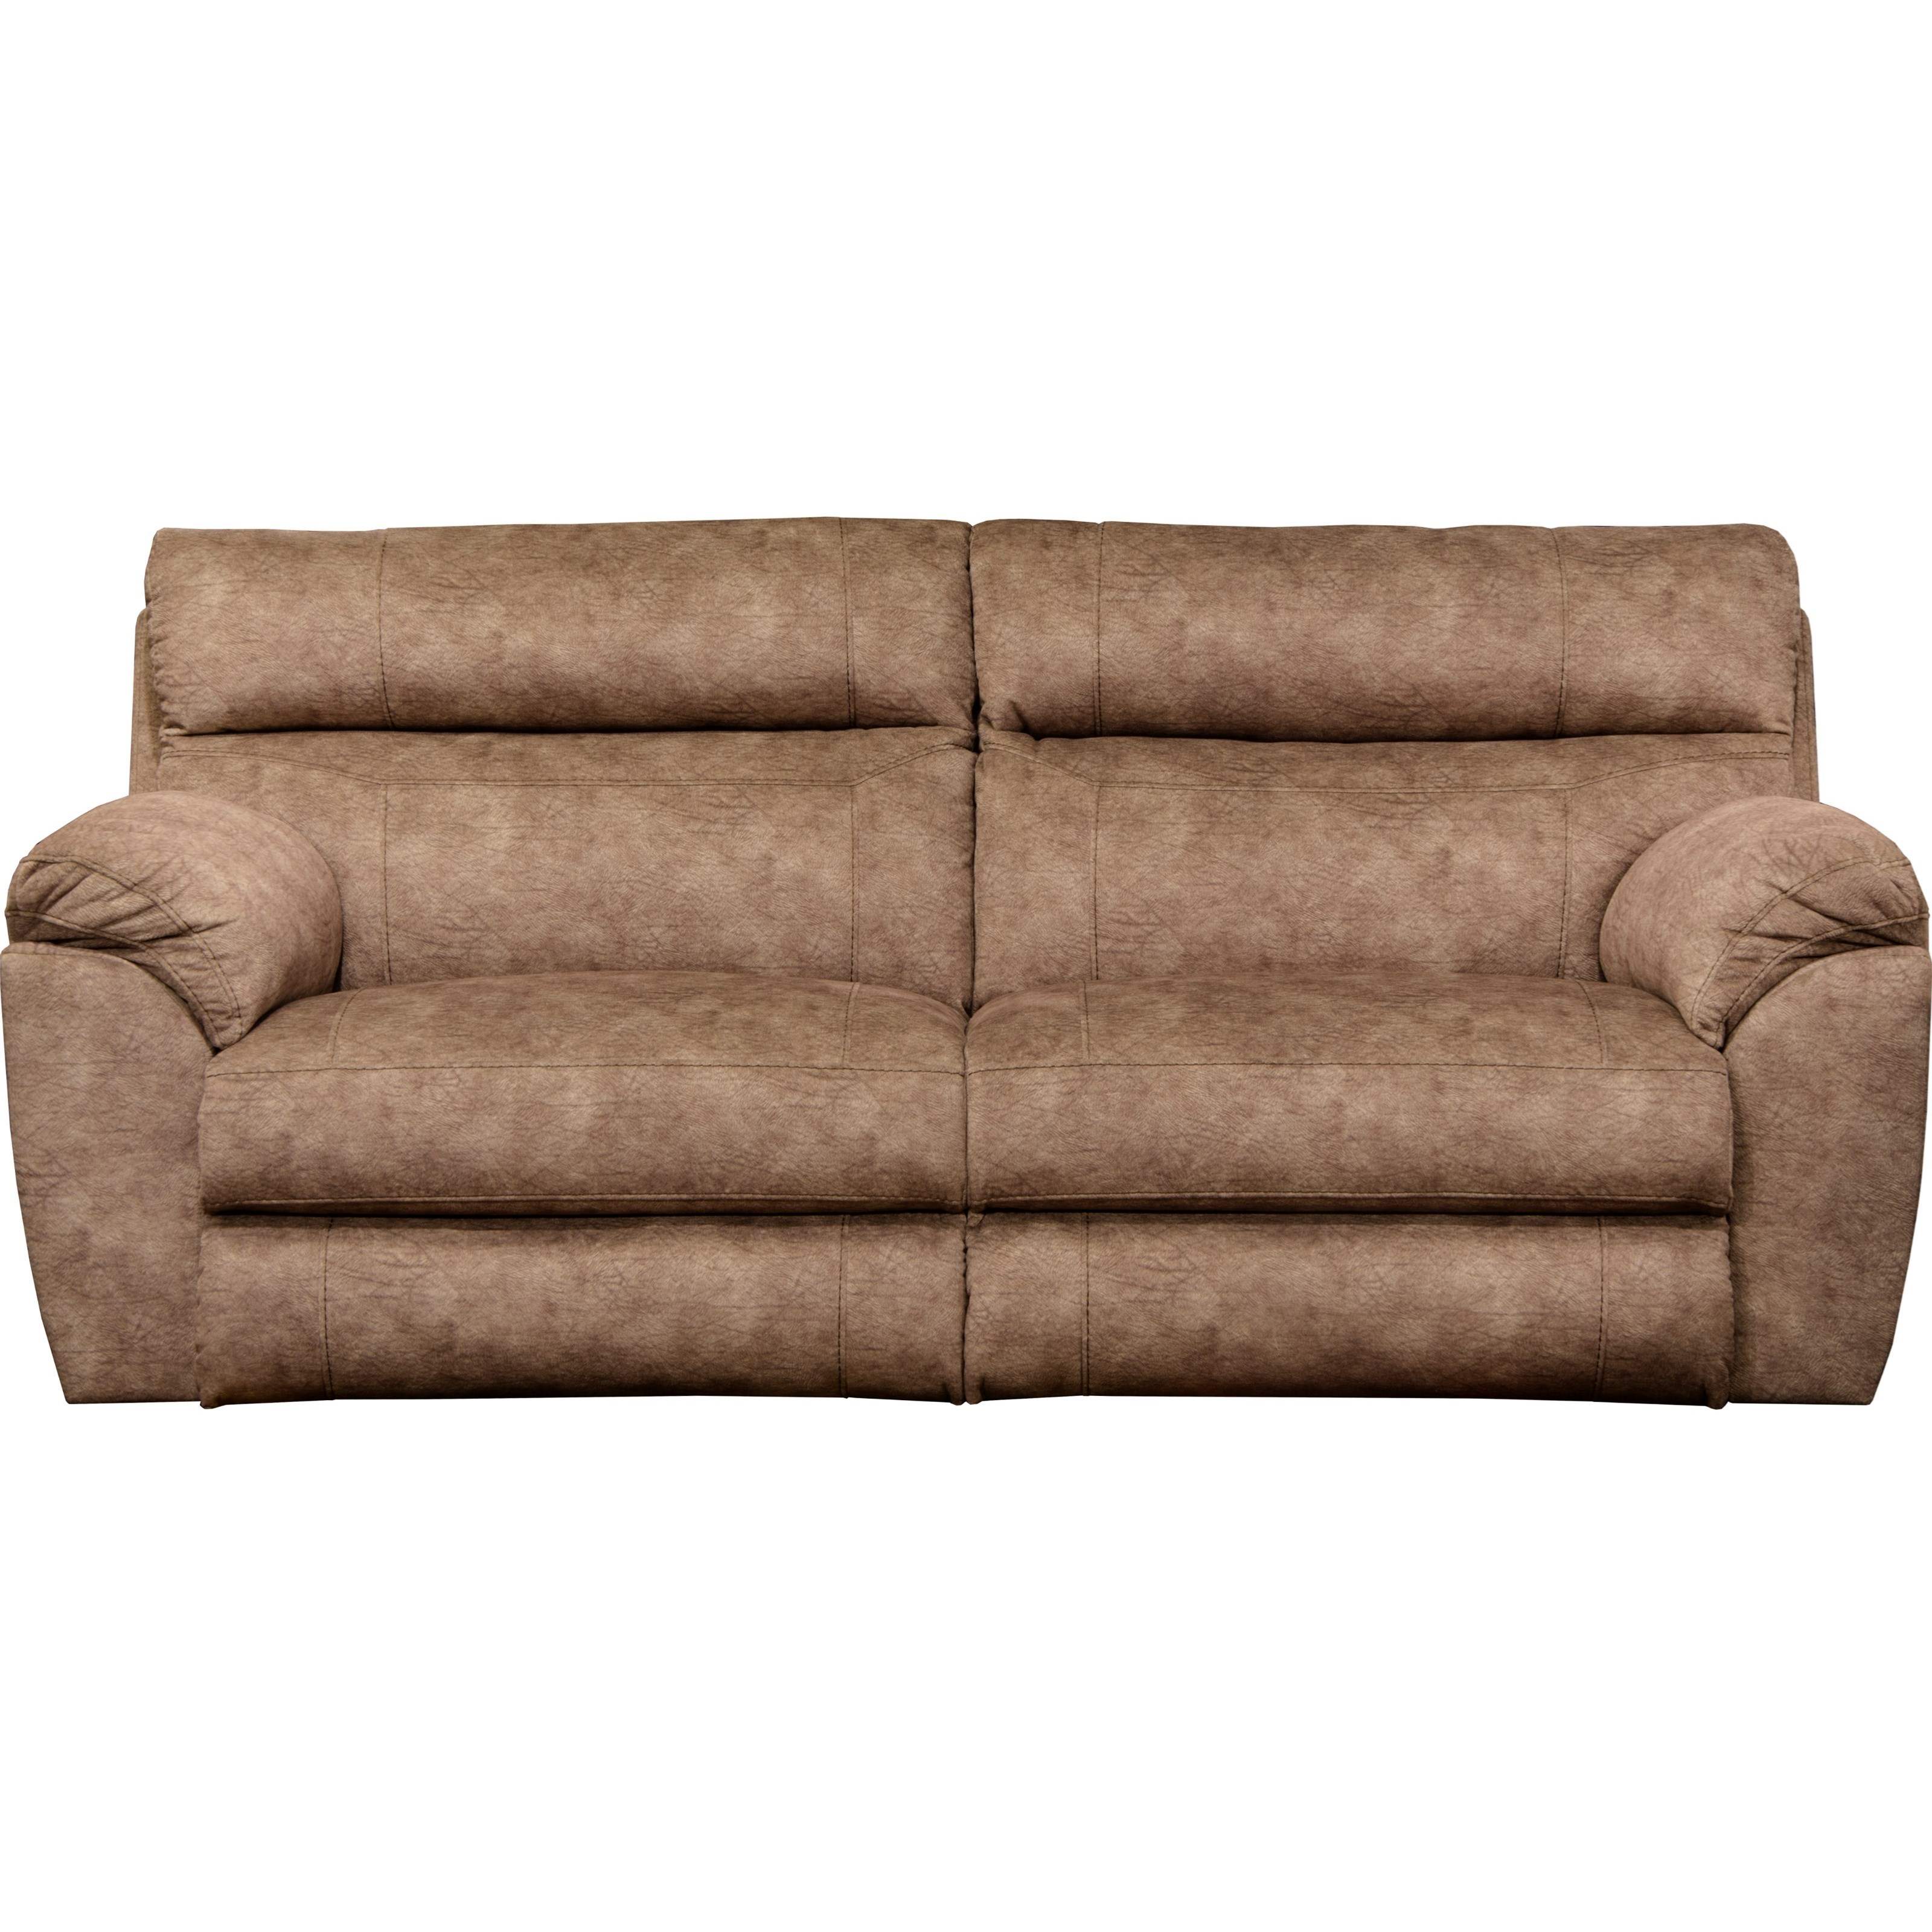 Sedona Power Lay Flat Reclining Sofa with Power Headrests by Catnapper at  EFO Furniture Outlet